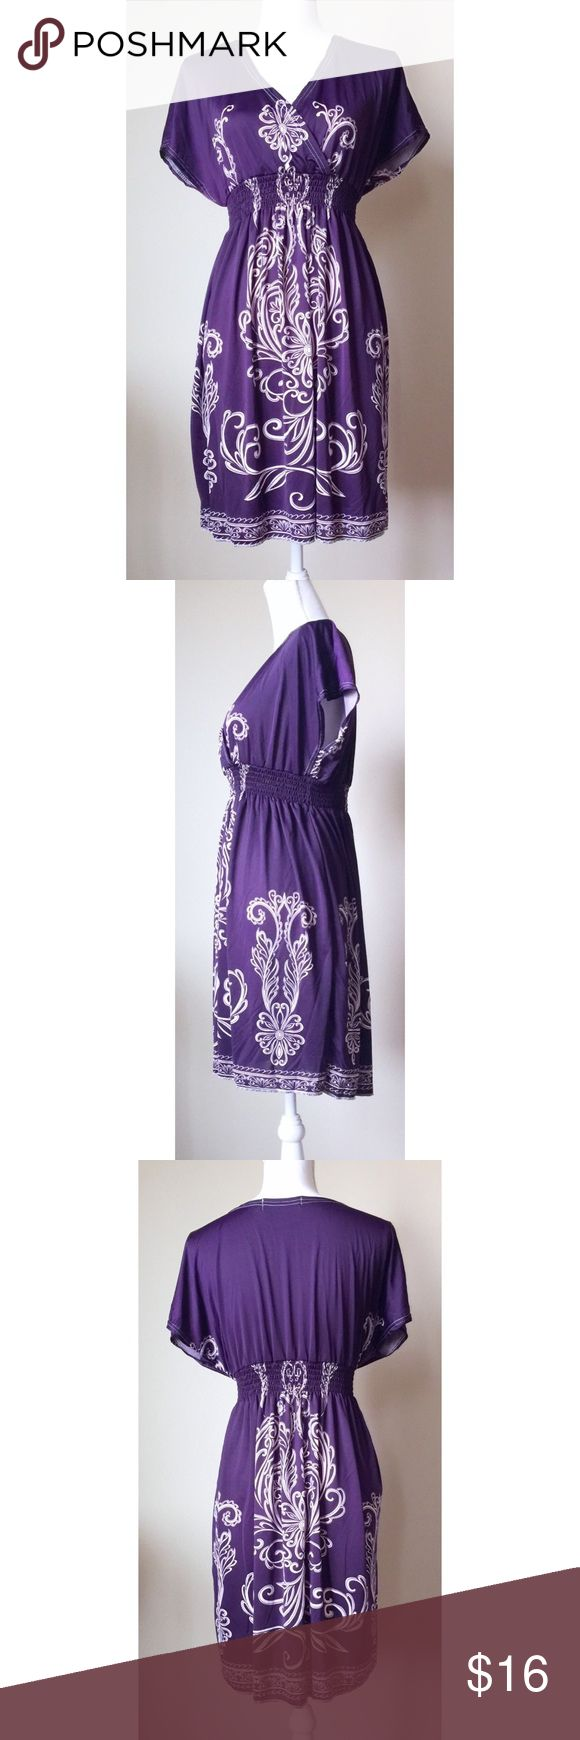 Gorgeous Wrap Front Dress NWOT.  Beautiful short sleeved wrap front dress.  Light weight and perfect for spring and summer. Dresses Midi